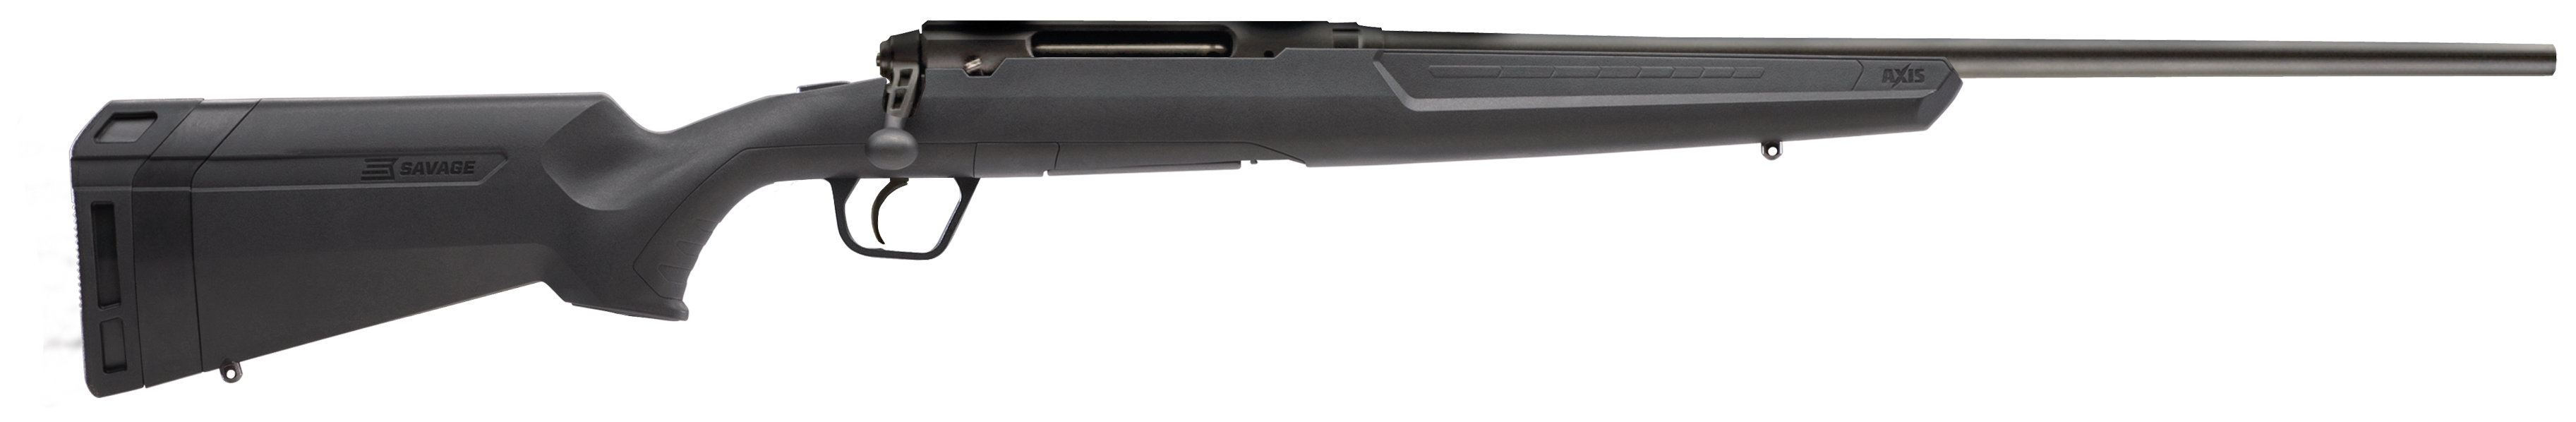 Savage Arms Axis 243 Win